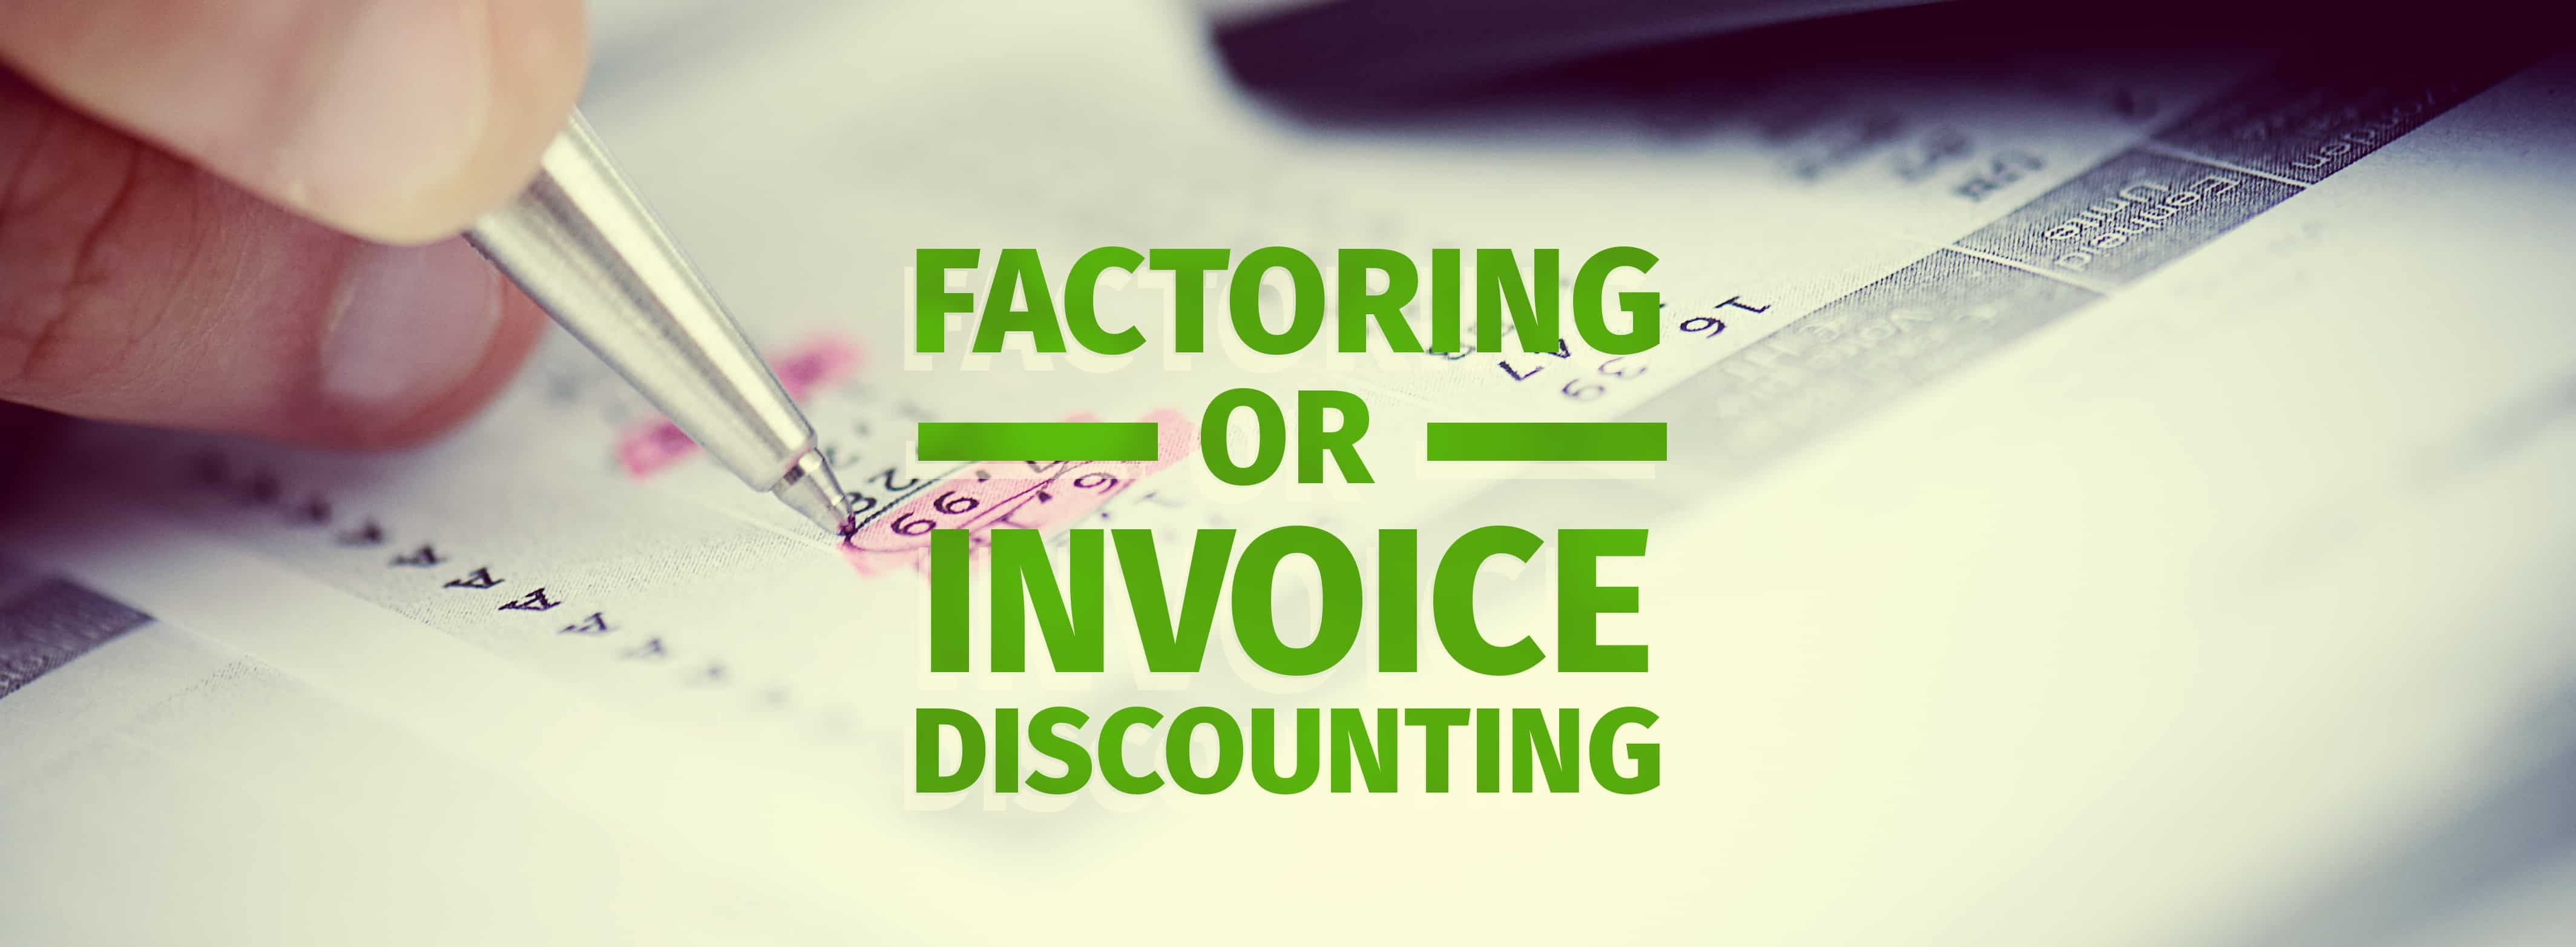 invoice discounting vs factoring factoring vs invoice discounting